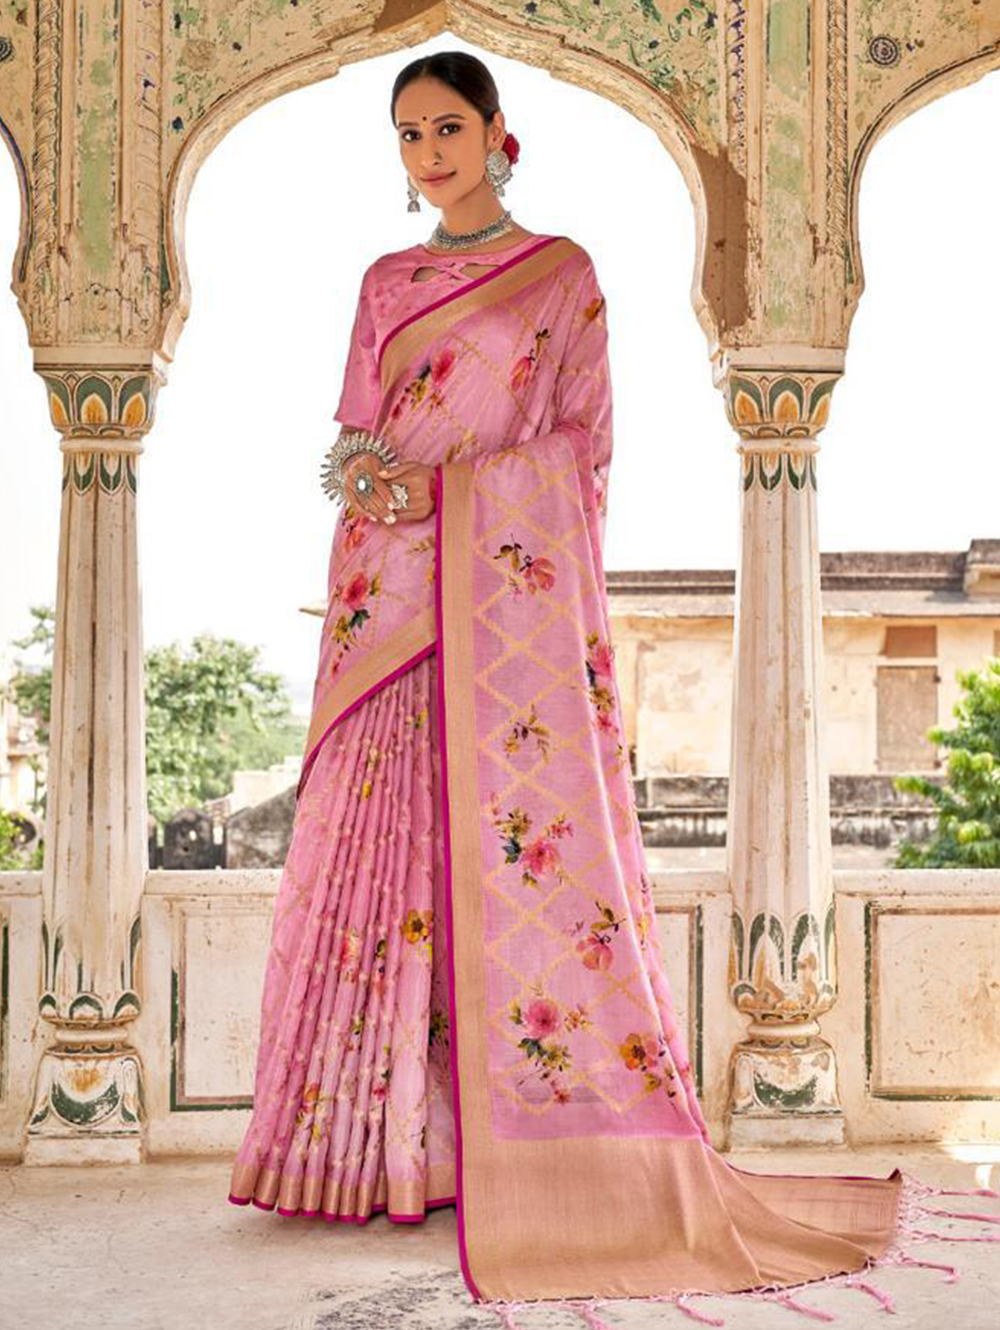 Pink Digital Printed Muslin silk saree dvz0001423 - Branded saree for ladies